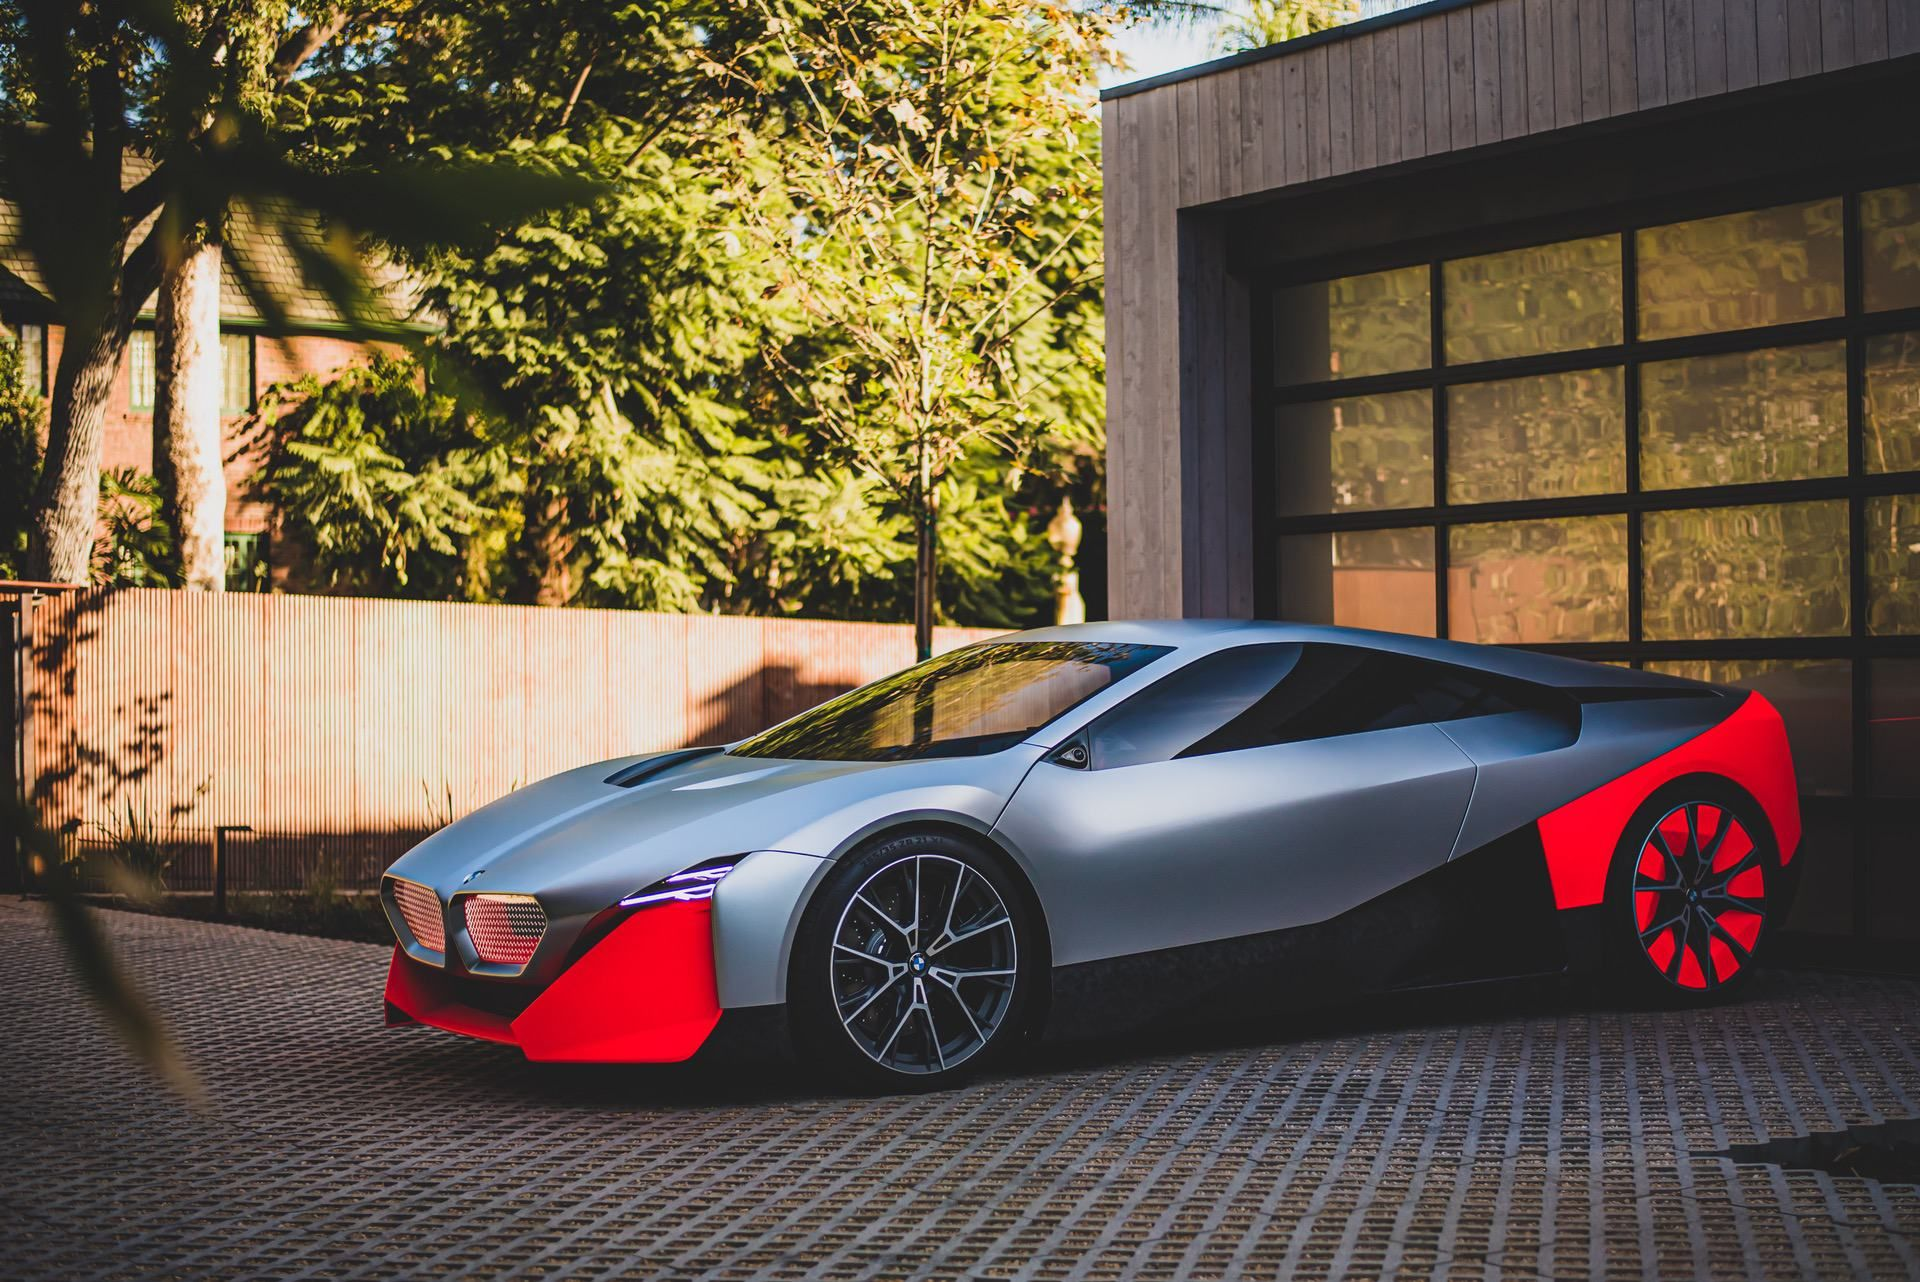 Inext M Next Supercar And X8 Are The Pillars Of Bmw S Overhaul In 2020 Bmw Super Cars Bmw Supercar